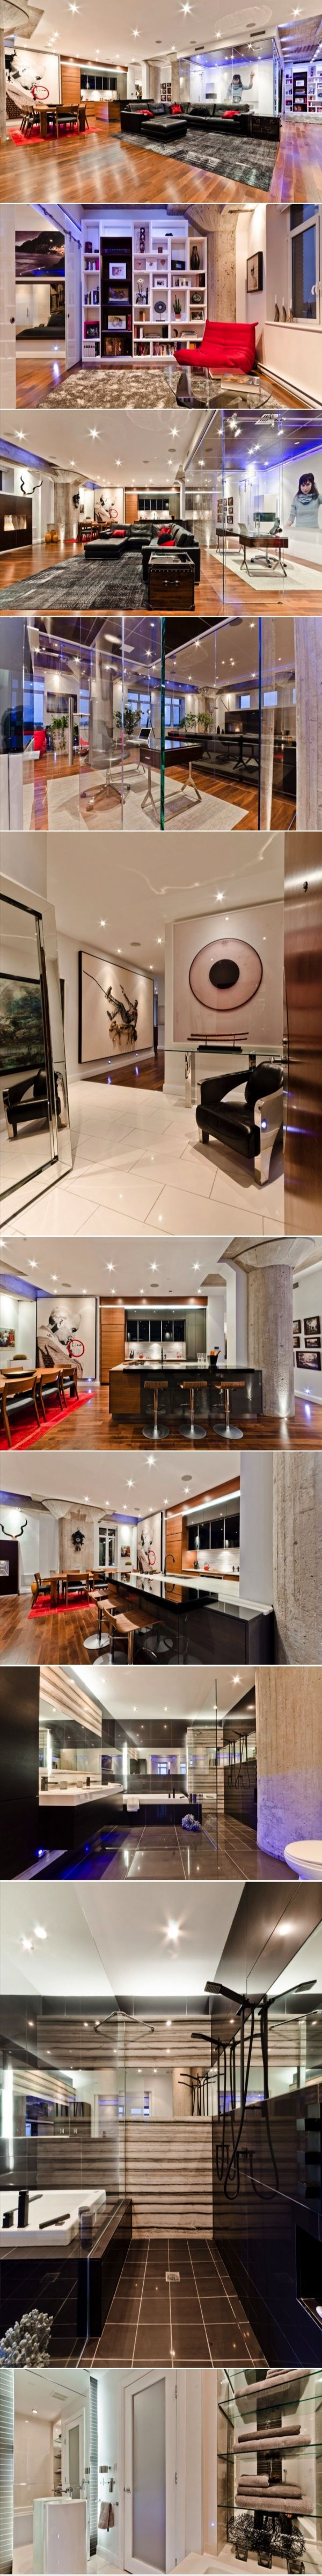 Old warehouse in montreal transformed into a dazzling contemporary - A Loft In Old Montreal By Actdesign